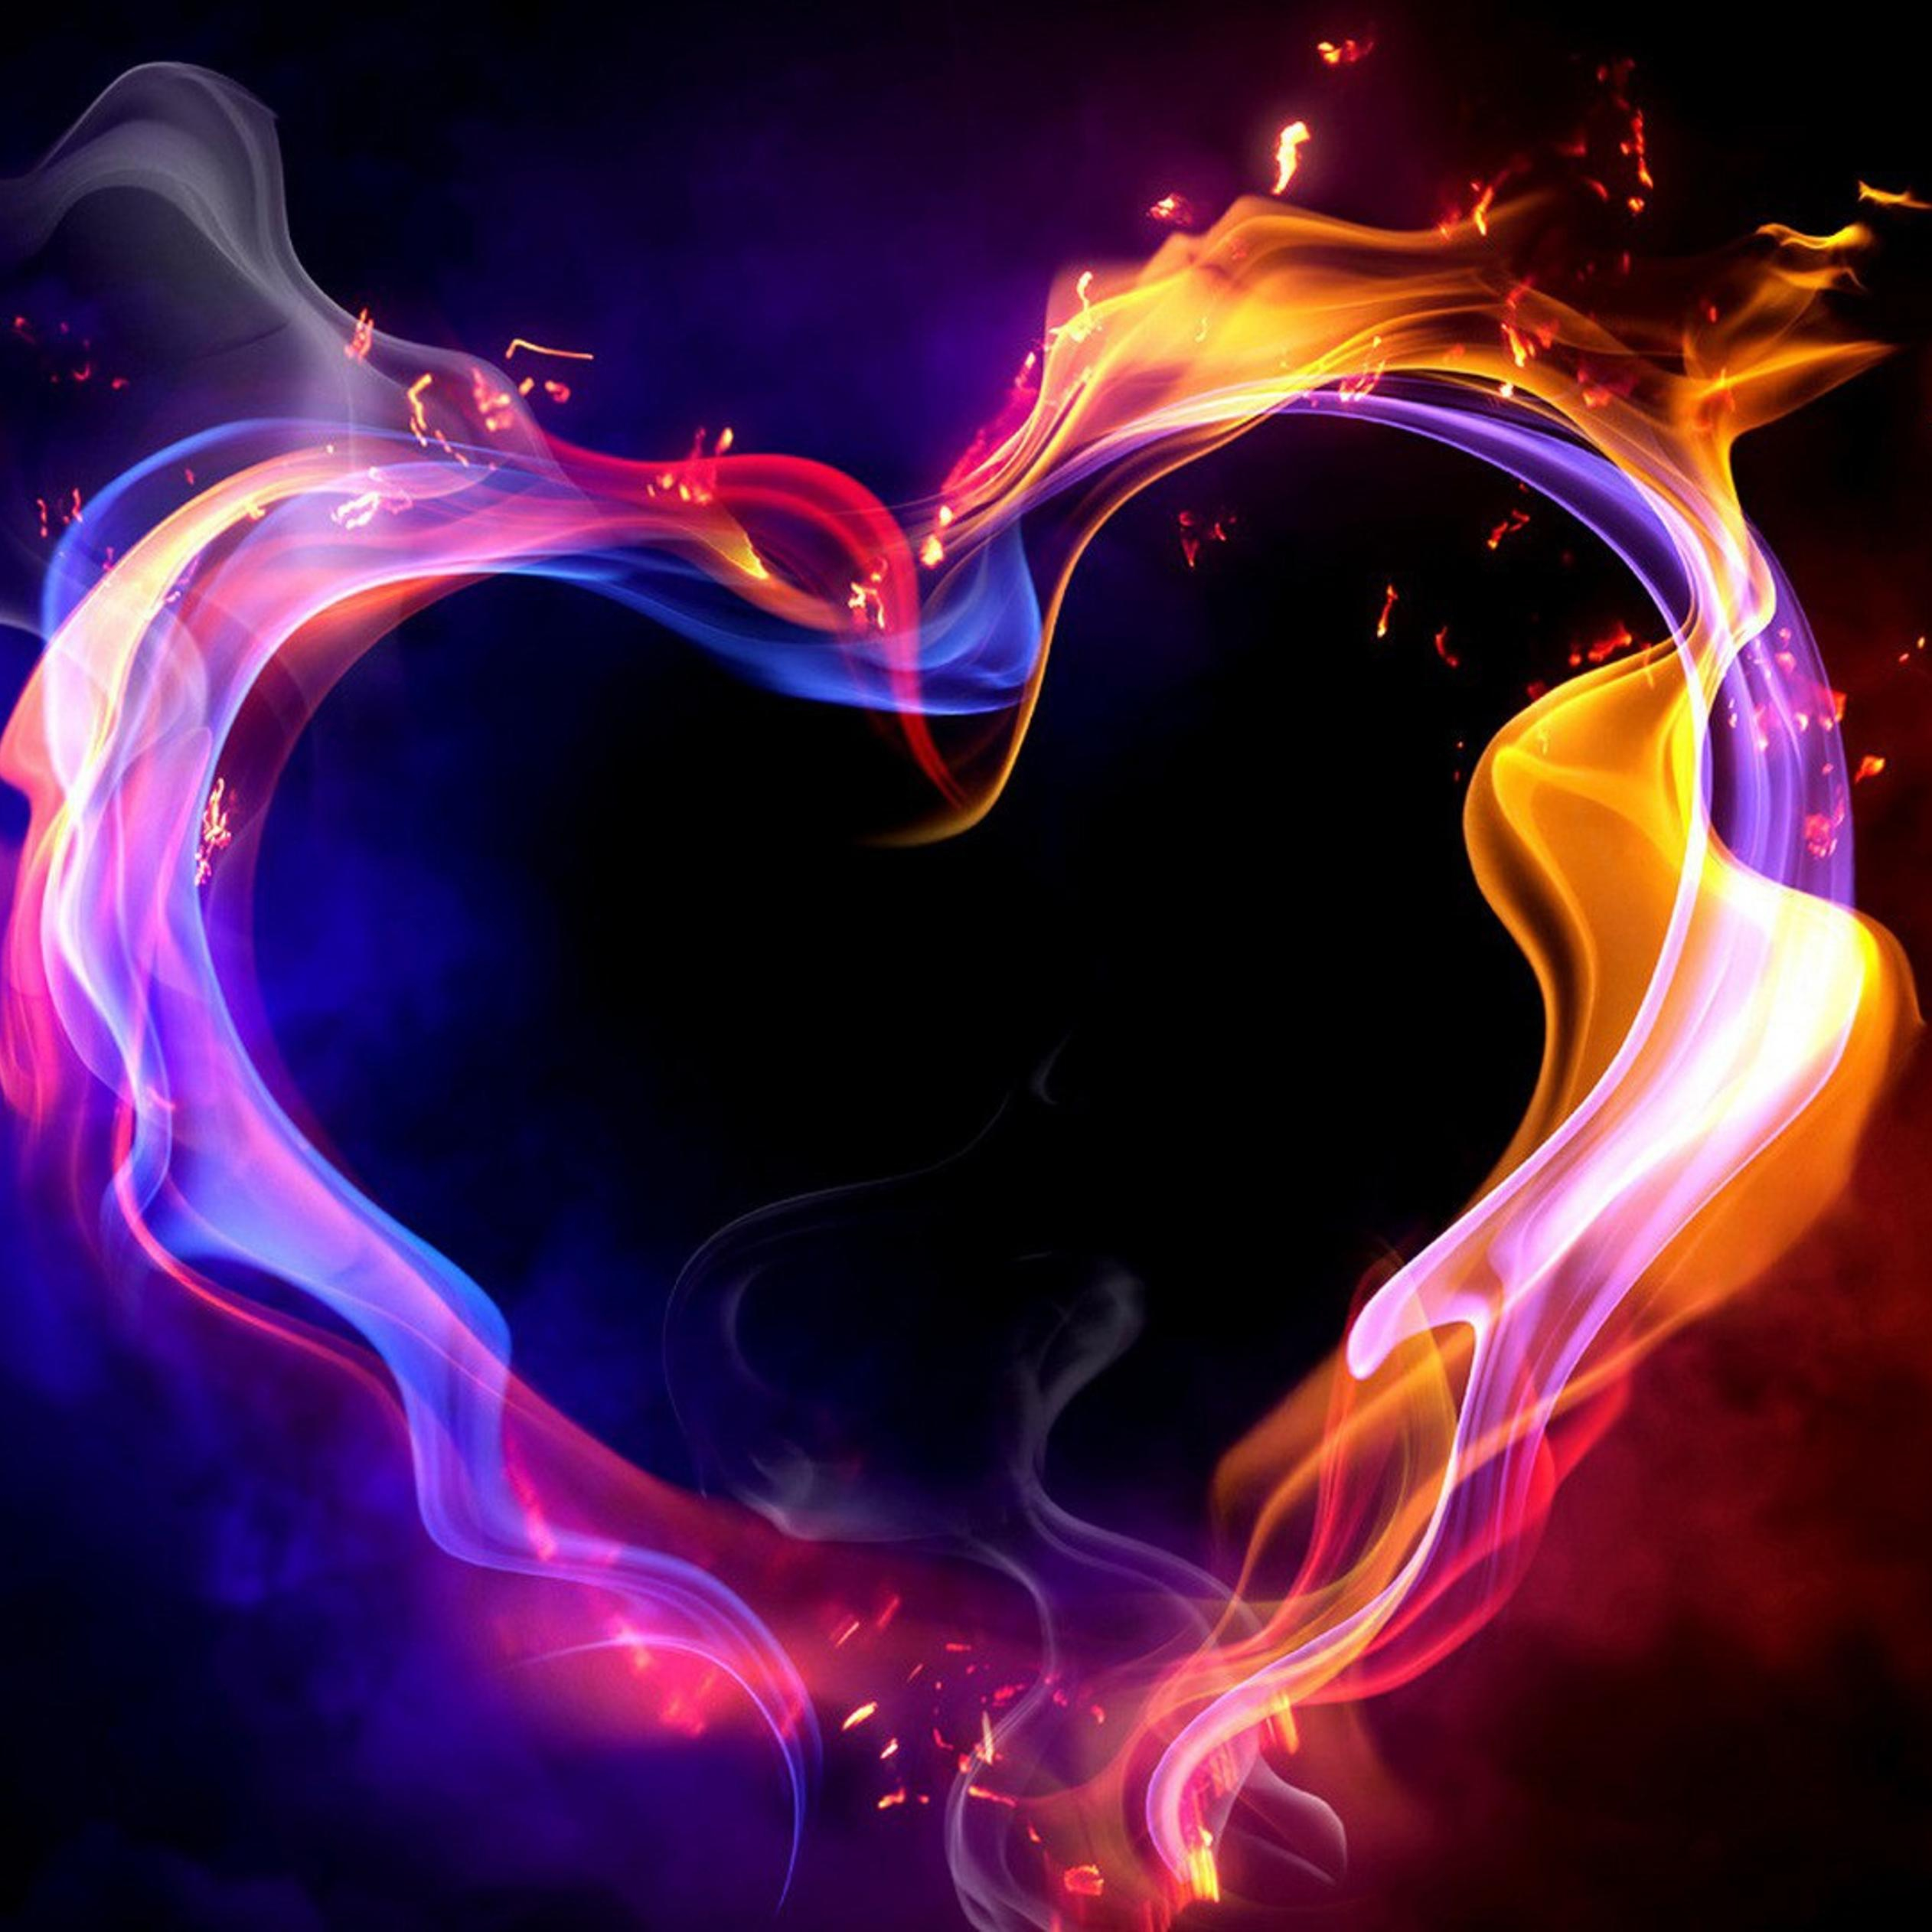 heart on fire beautiful hd valentines day wallpaper 2524x2524